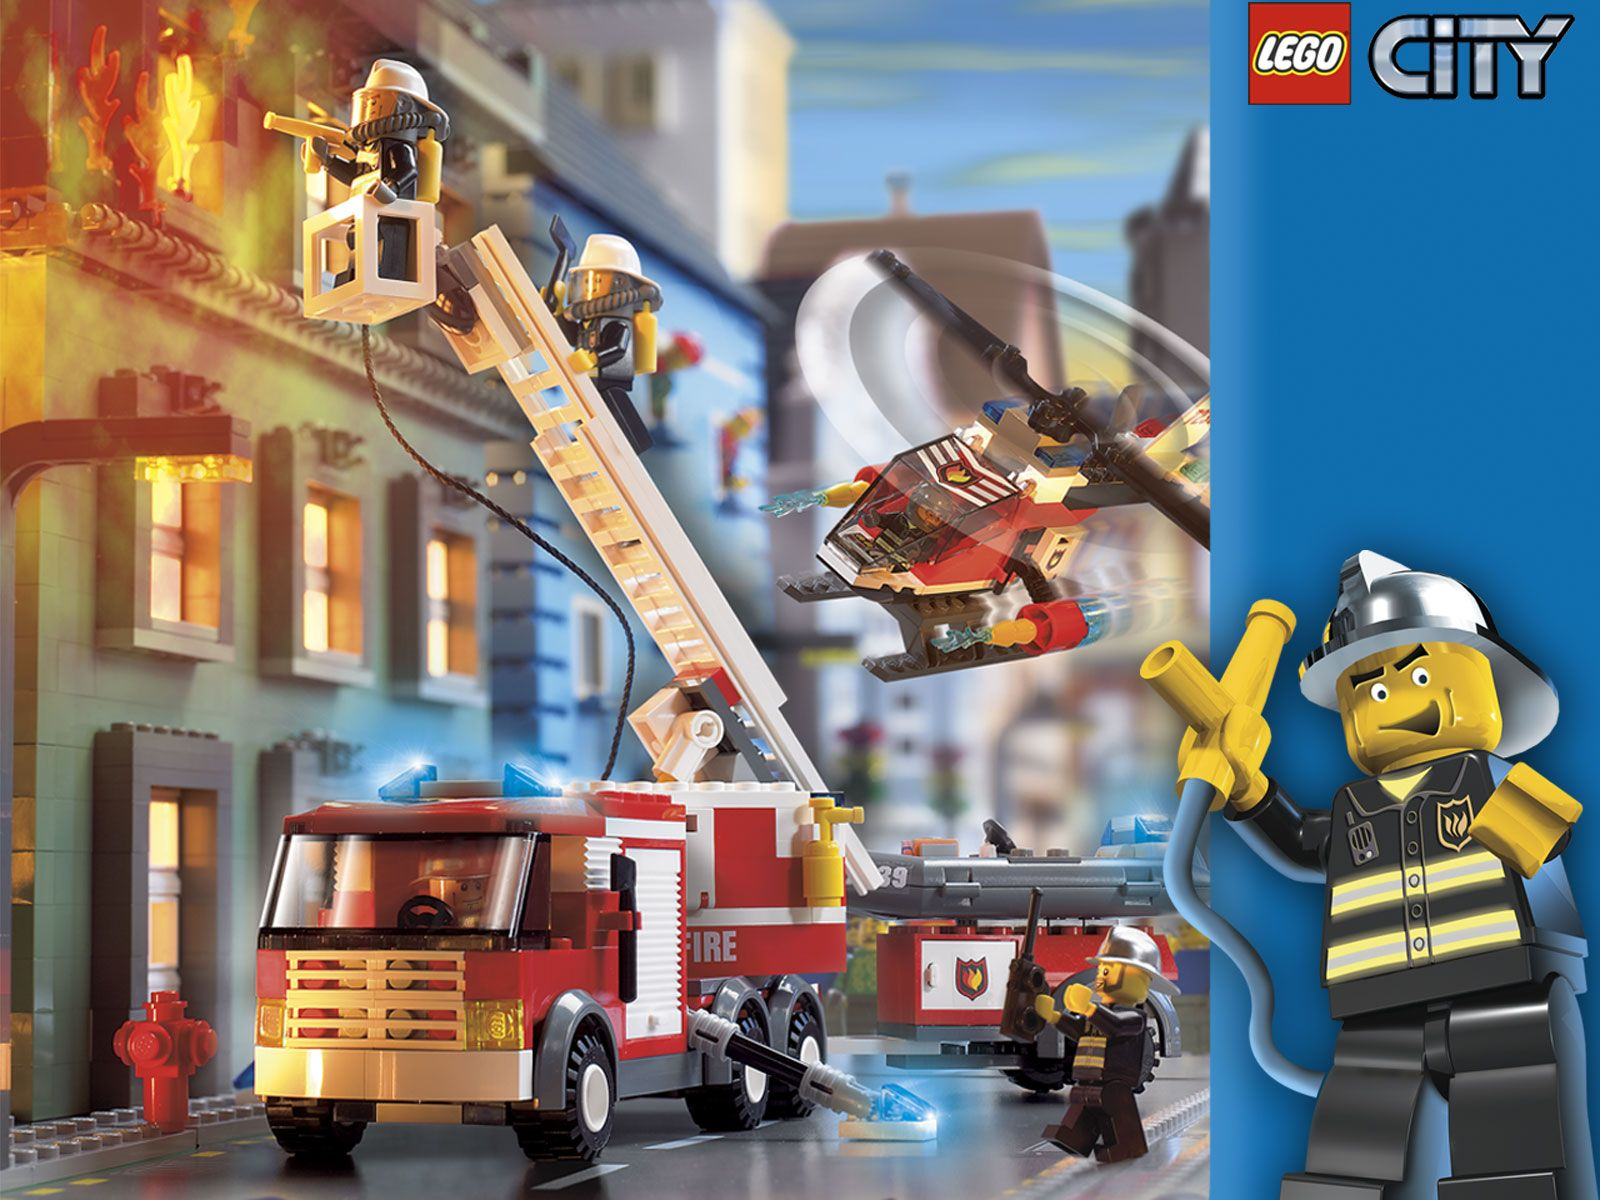 Lego Bedroom Wallpaper Lego City Fire Poster Joeys Bedroom Ideas Pinterest Fire